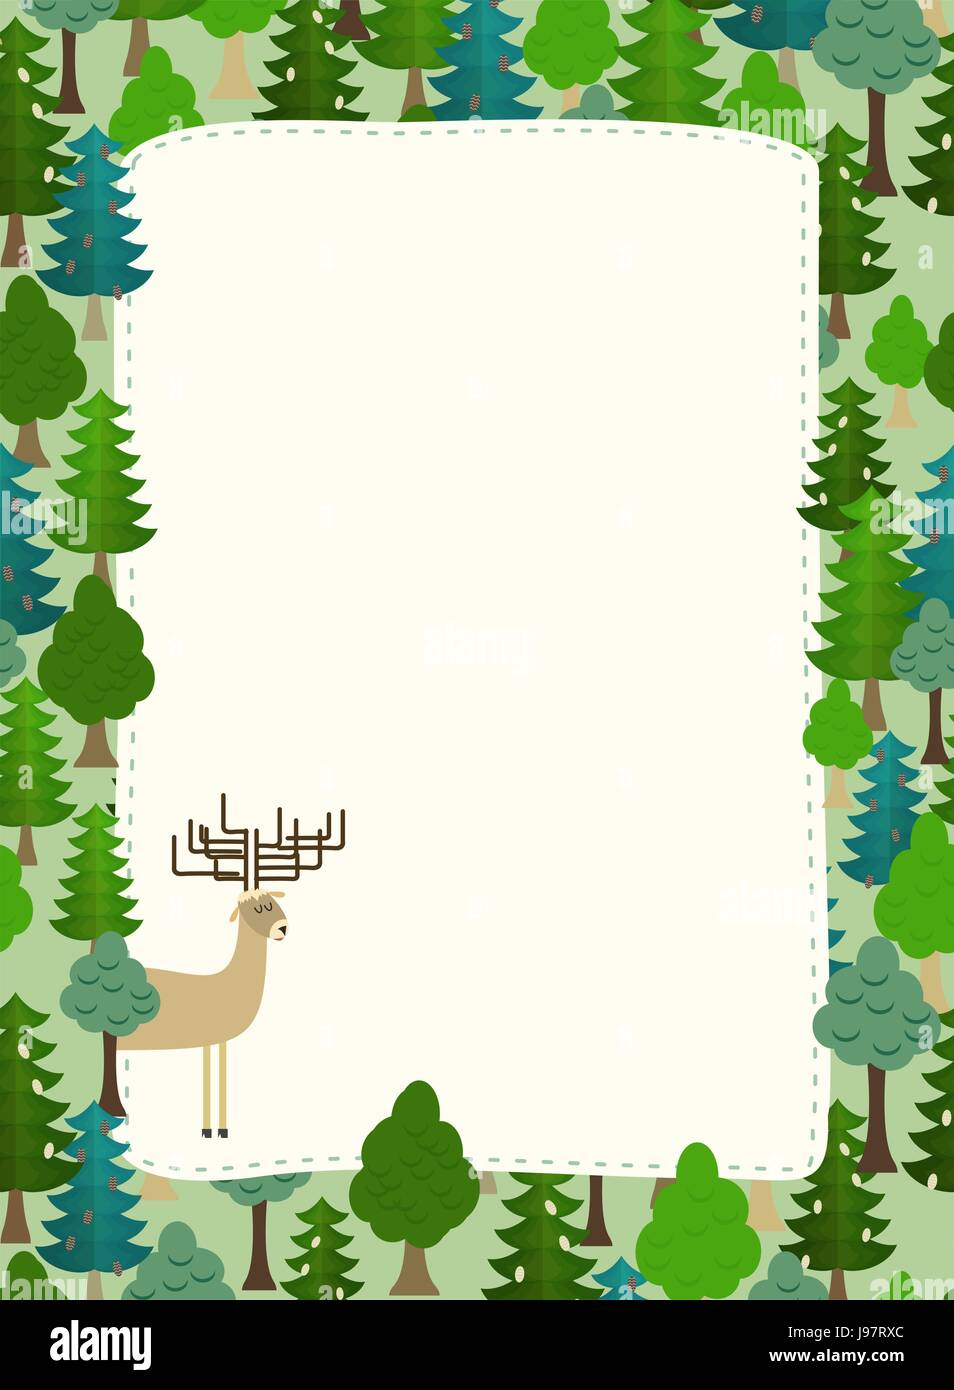 conifers pattern. Background of trees and deer. Earth day. Template with space for text - Stock Vector